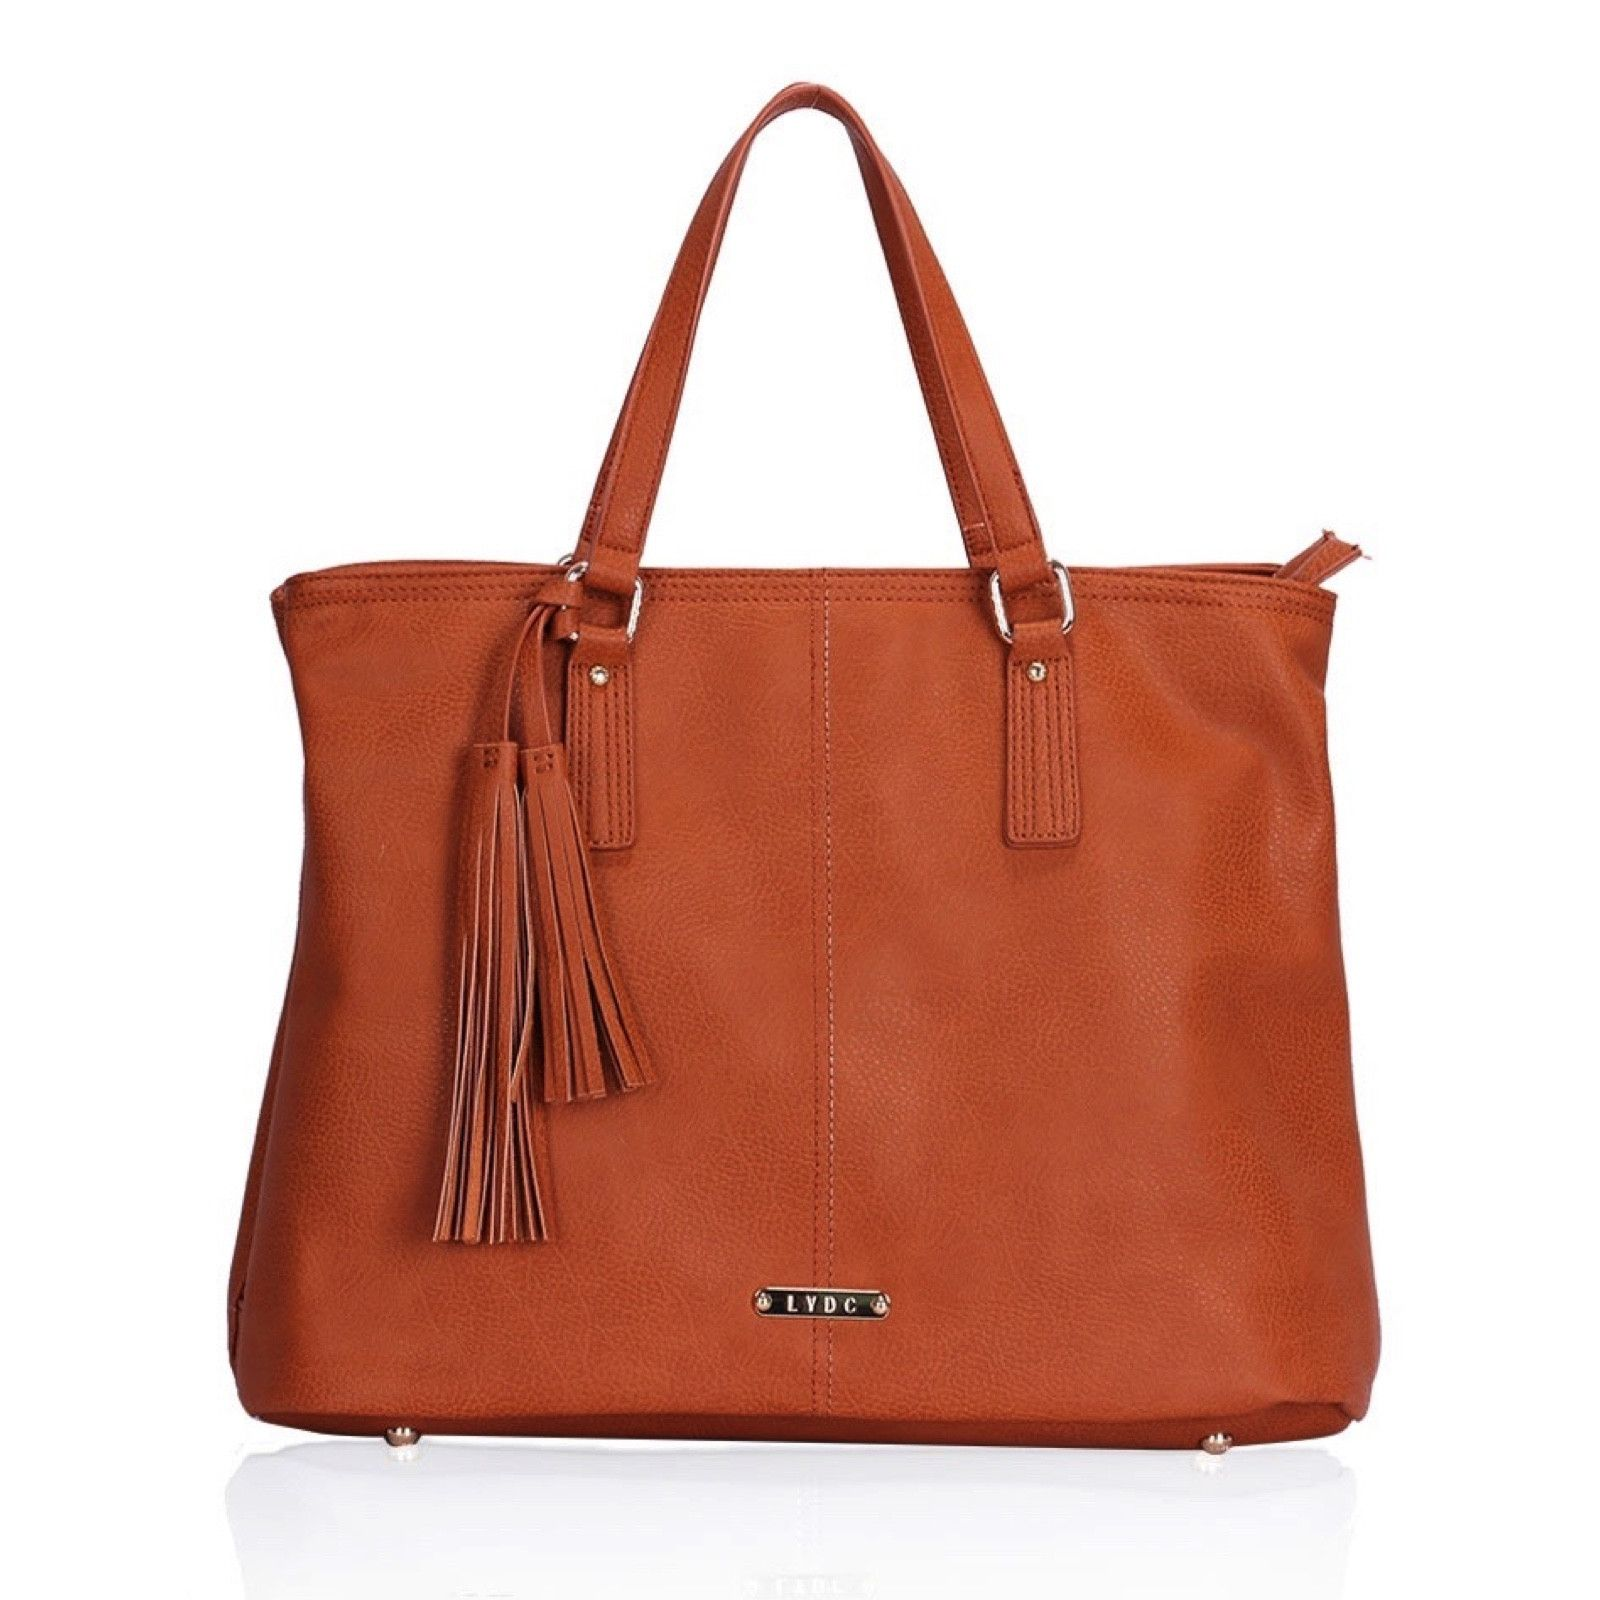 Lydc Box Hobo Bag In Brown By Style 3480 From Baked Le Uk